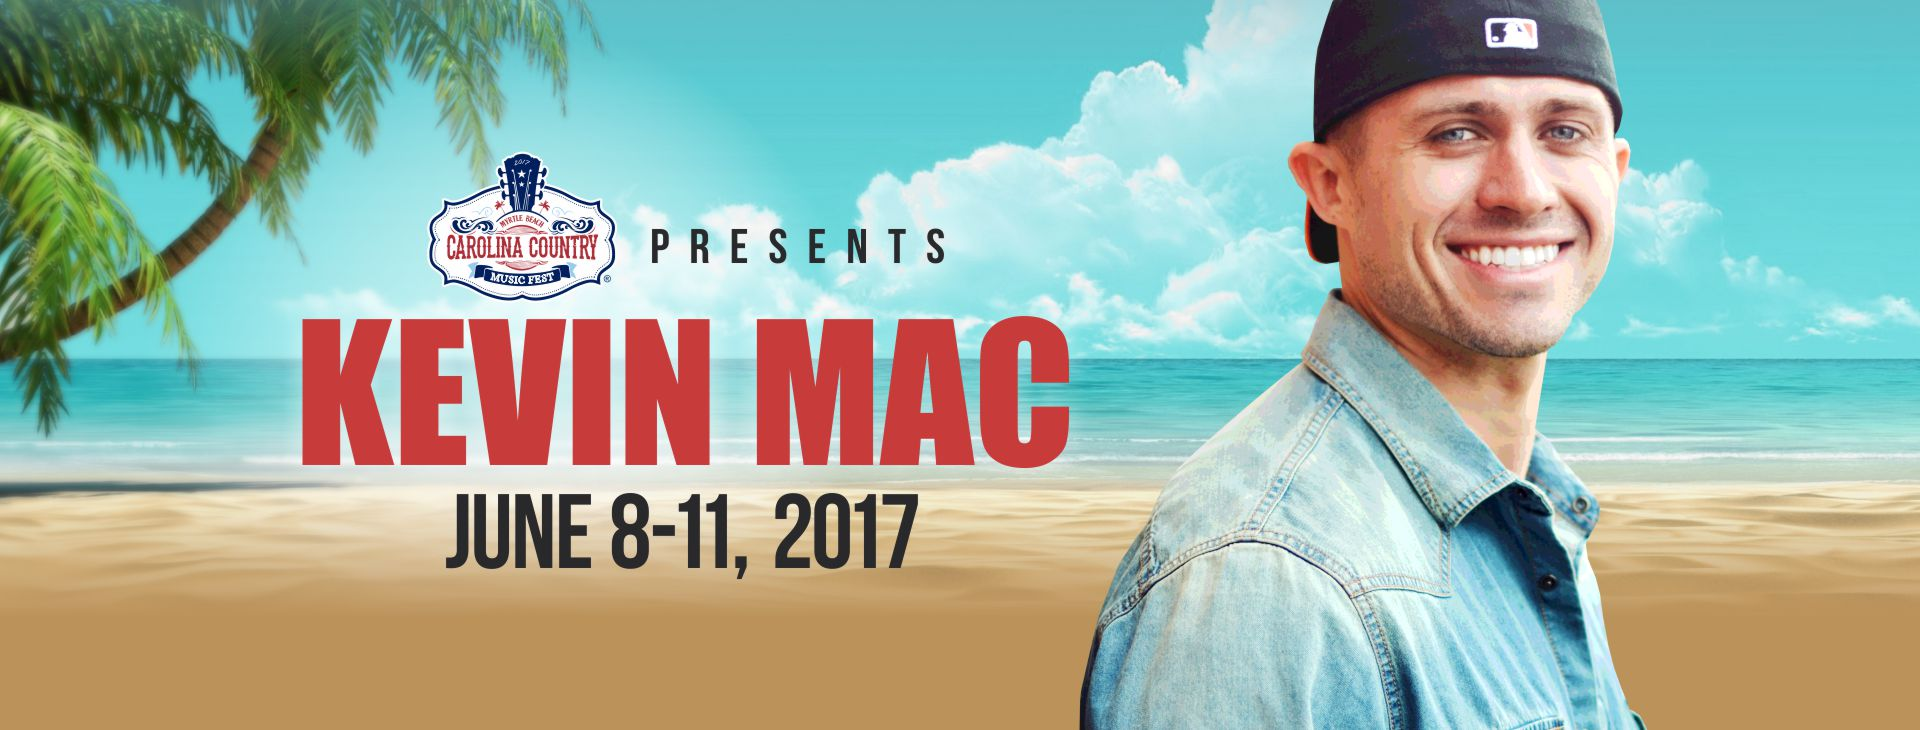 Kevin Mac Joins Carolina Country Music Fest!